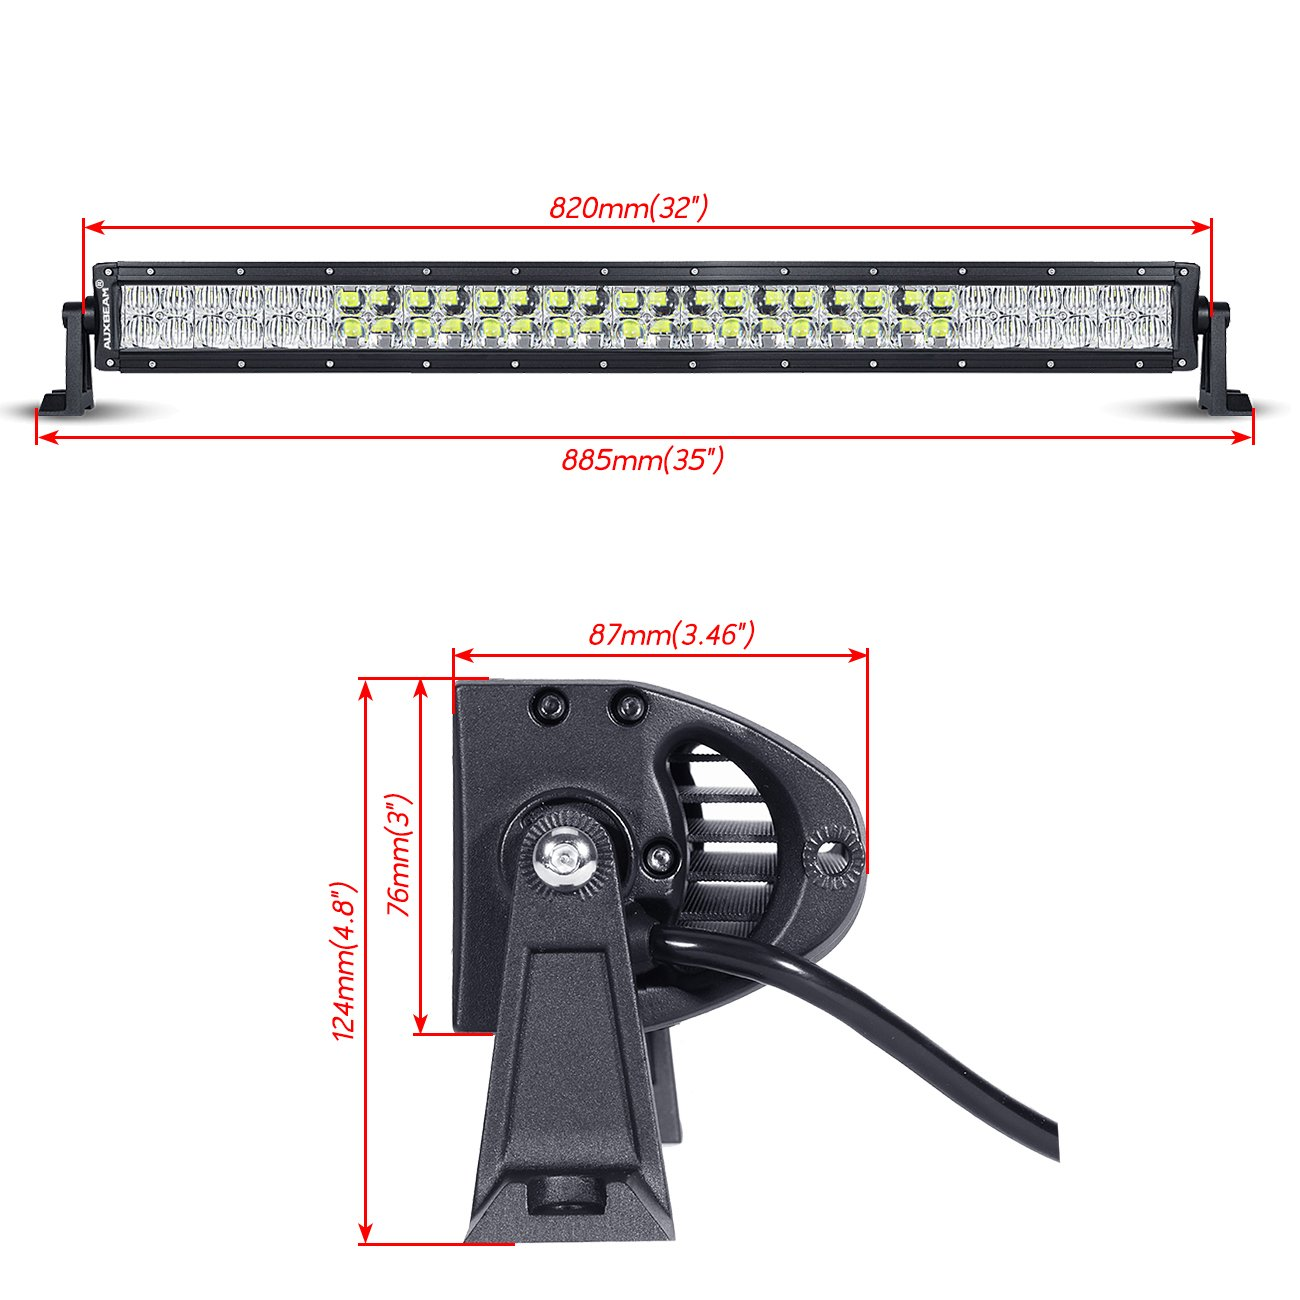 Auxbeam Wiring Diagram V Series Free Download Curving Led For Use W Light Bar Aliexpress Com Buy Hello Eovo 4d Curved 18w